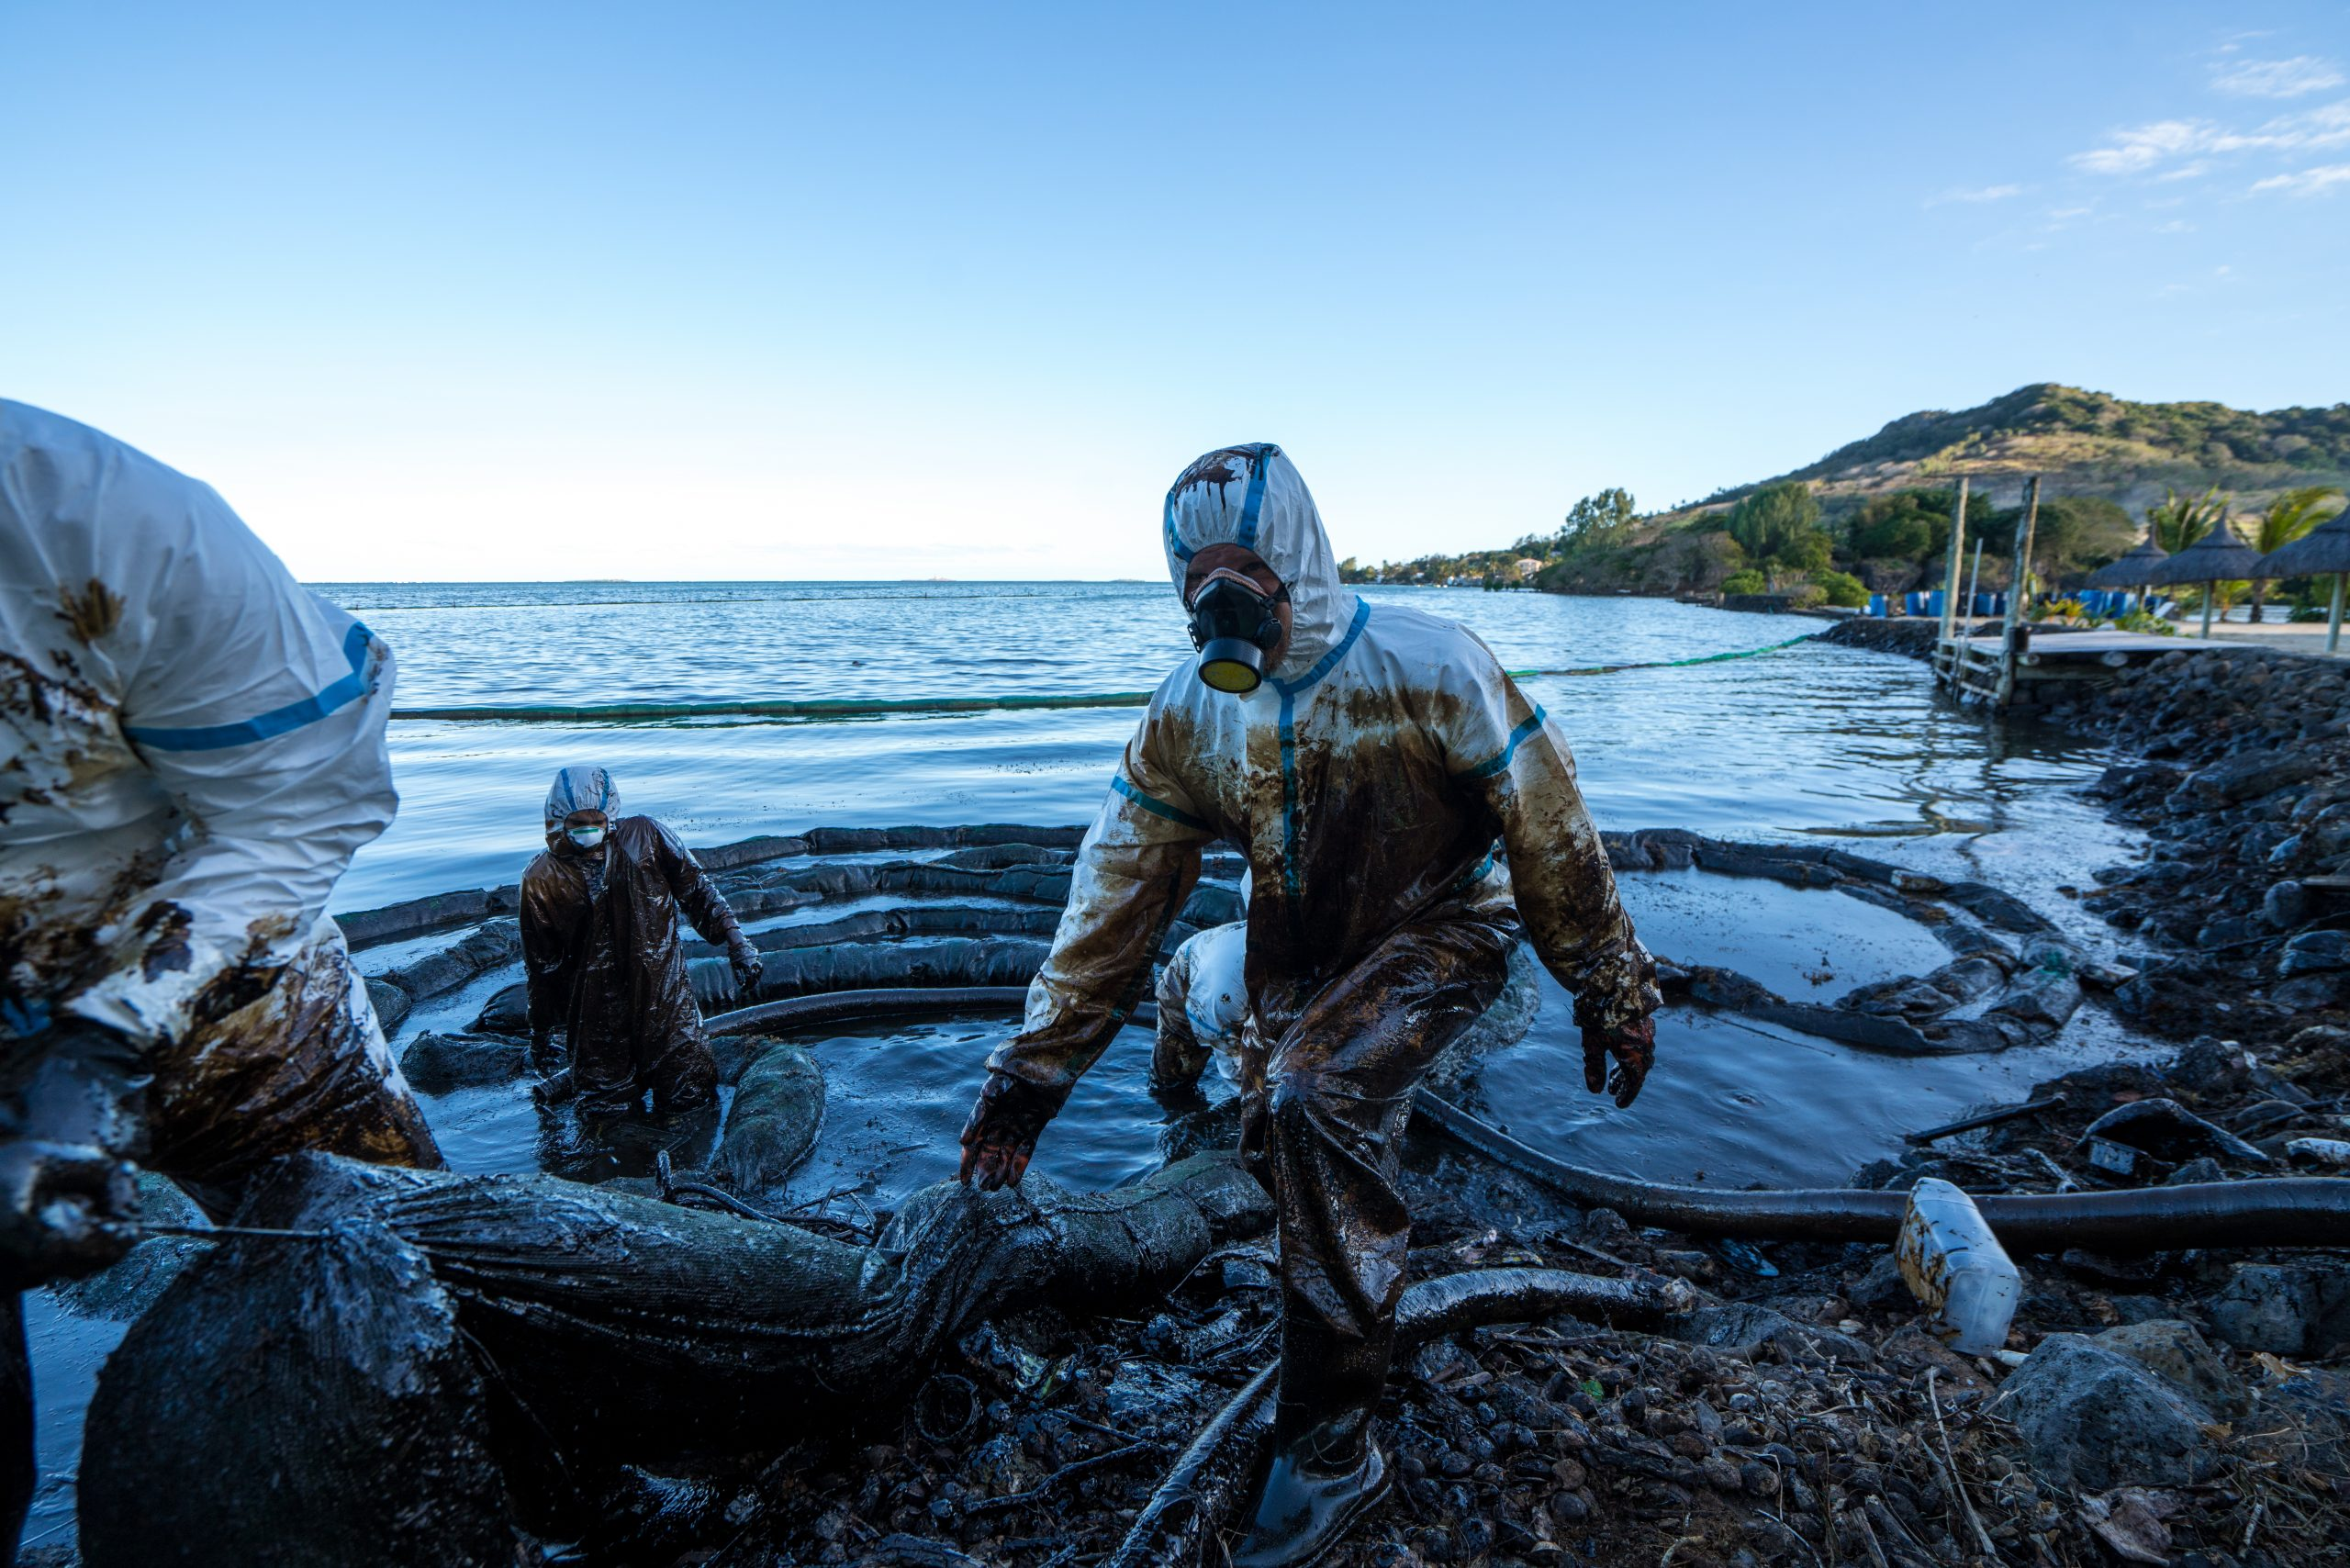 Volunteers clean the ocean coast from oil after a tanker wreck. Mauritius